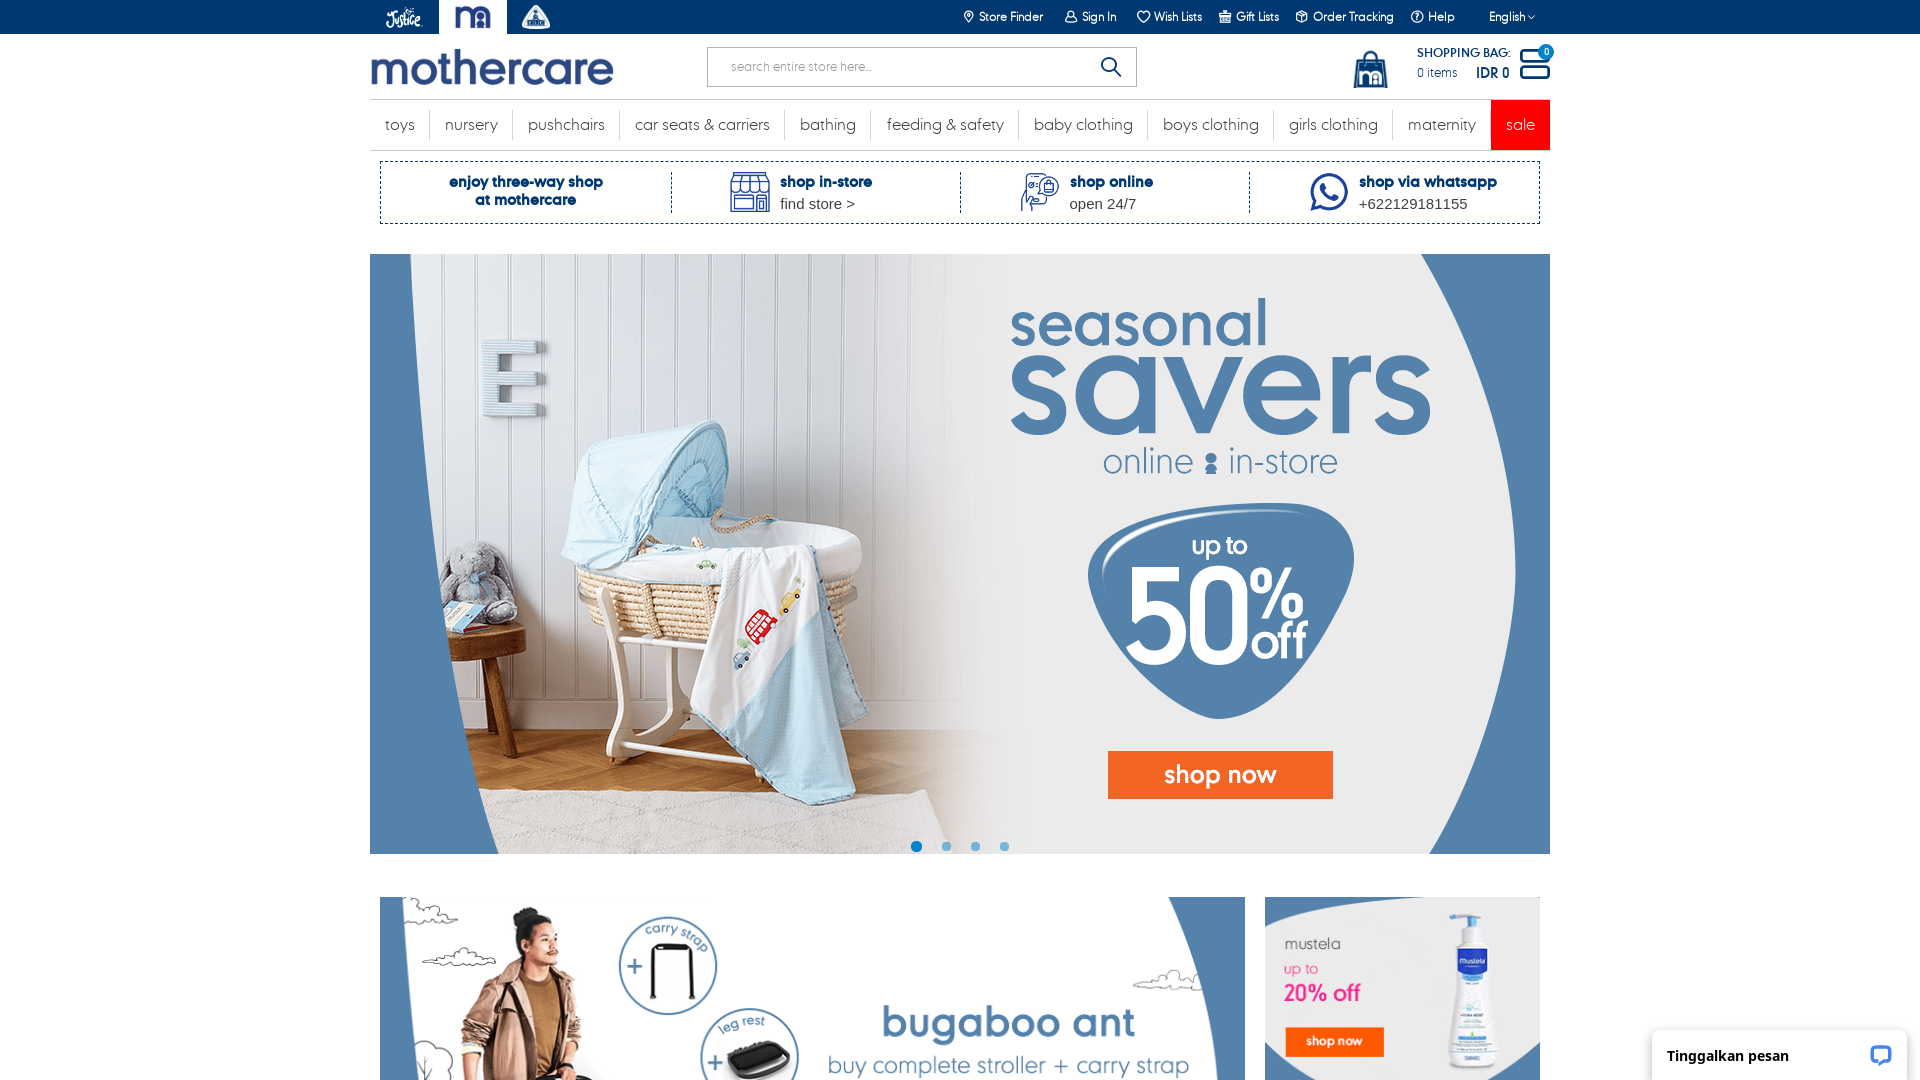 Mothercare Indonesia website